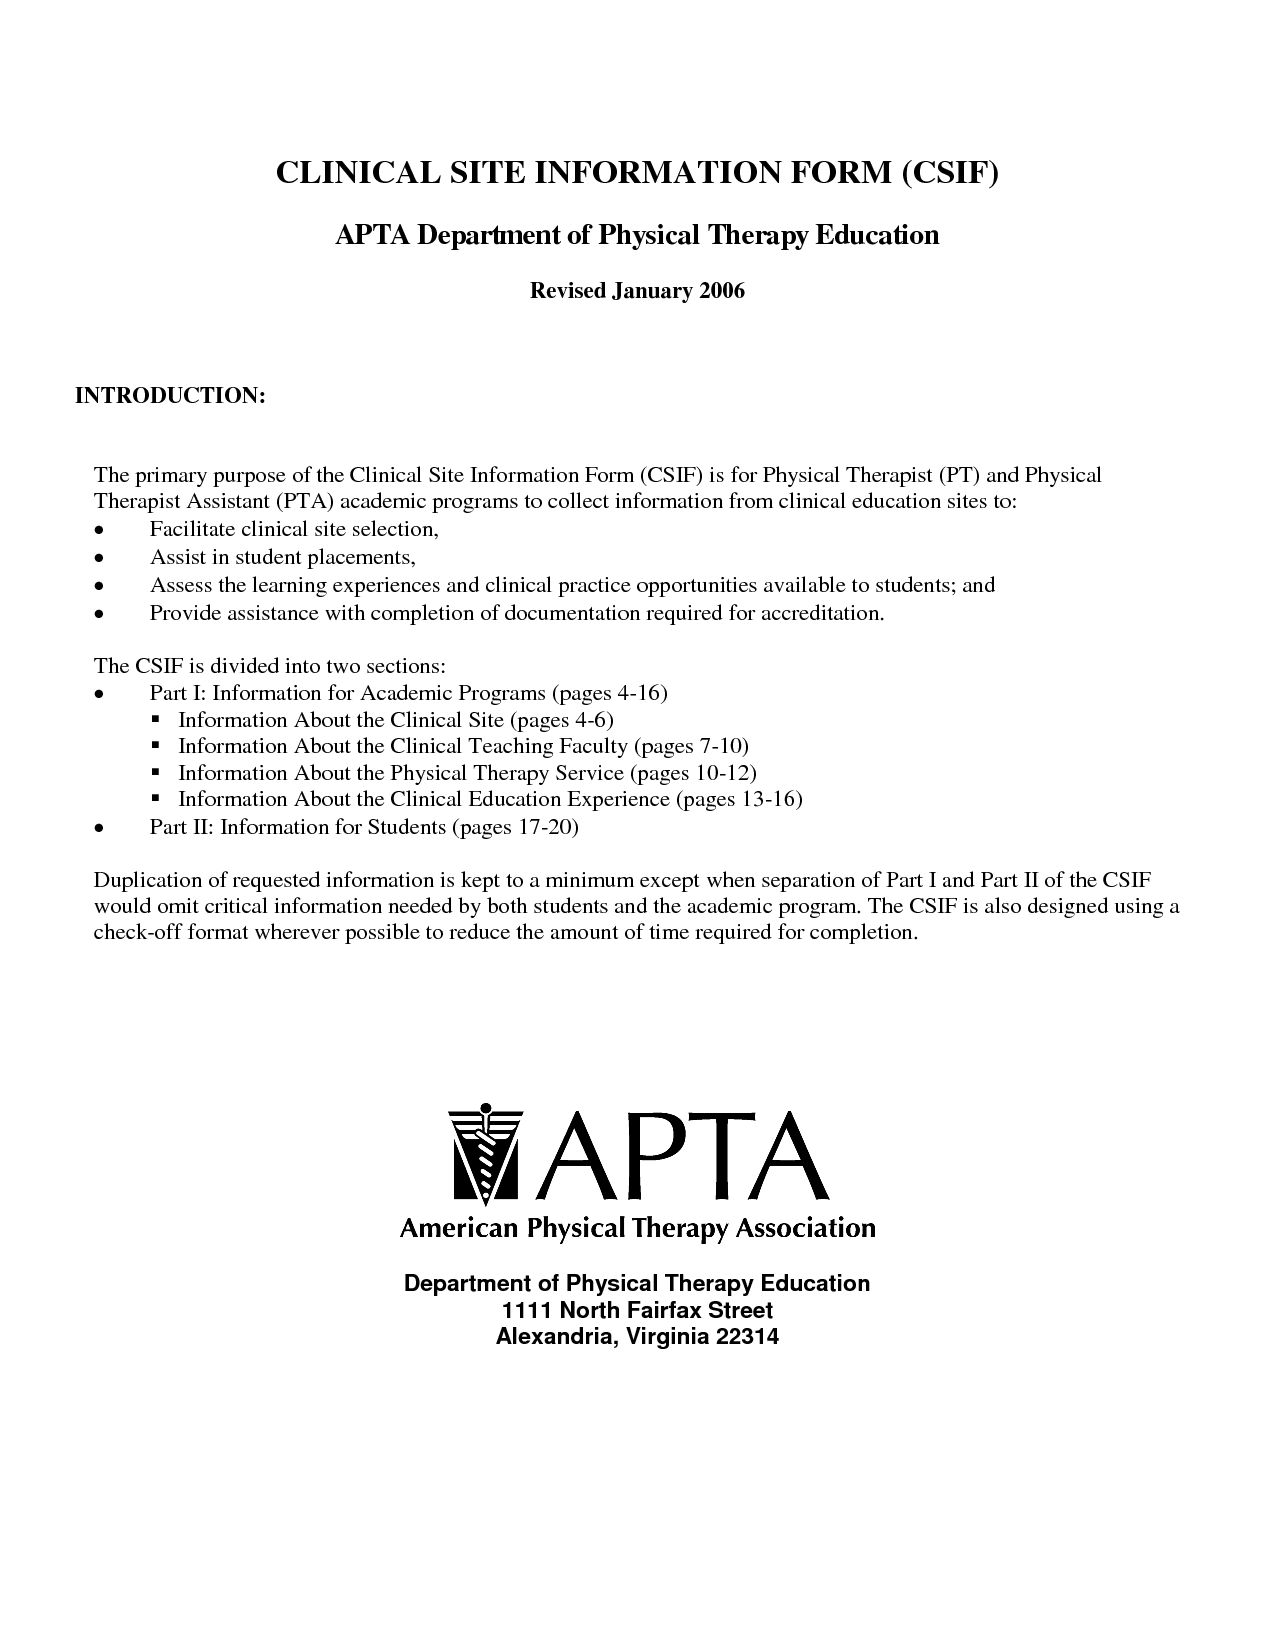 clinical site information form for apta department of physical therapy with introduction assistant physiotherapist resume